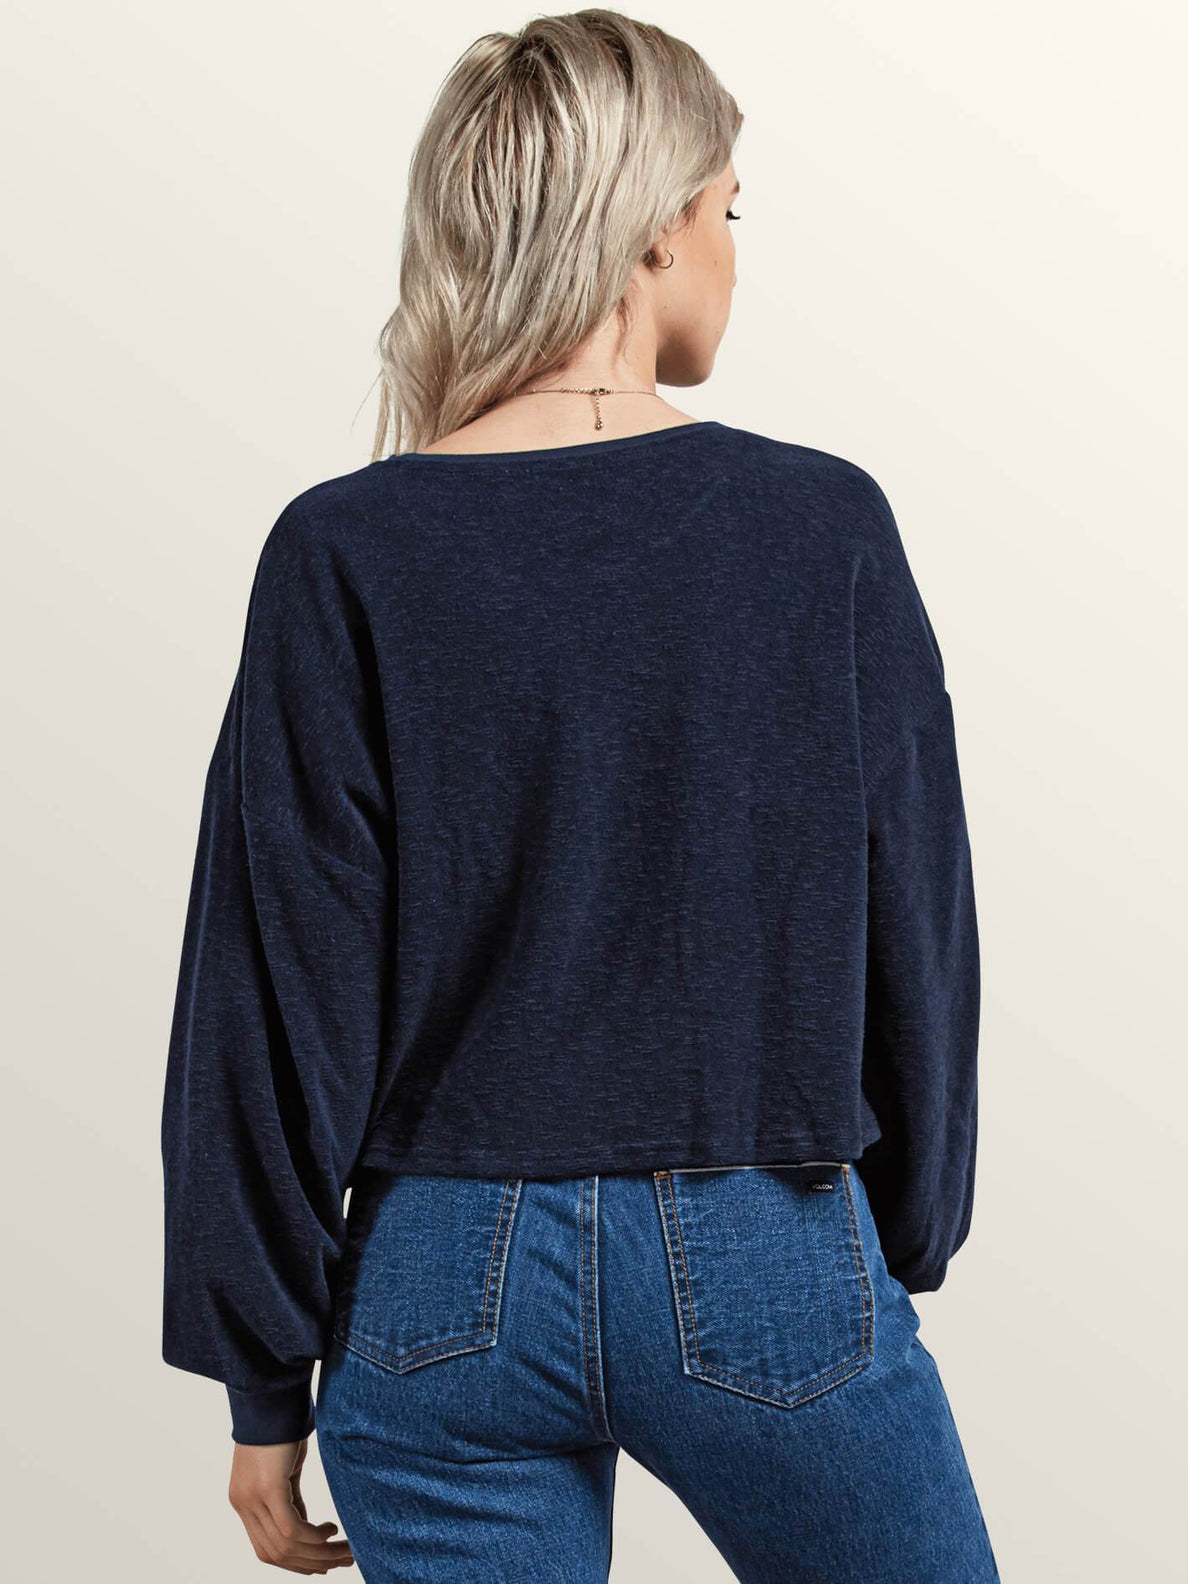 Recommended 4 Me Long Sleeve Tee In Sea Navy, Back View